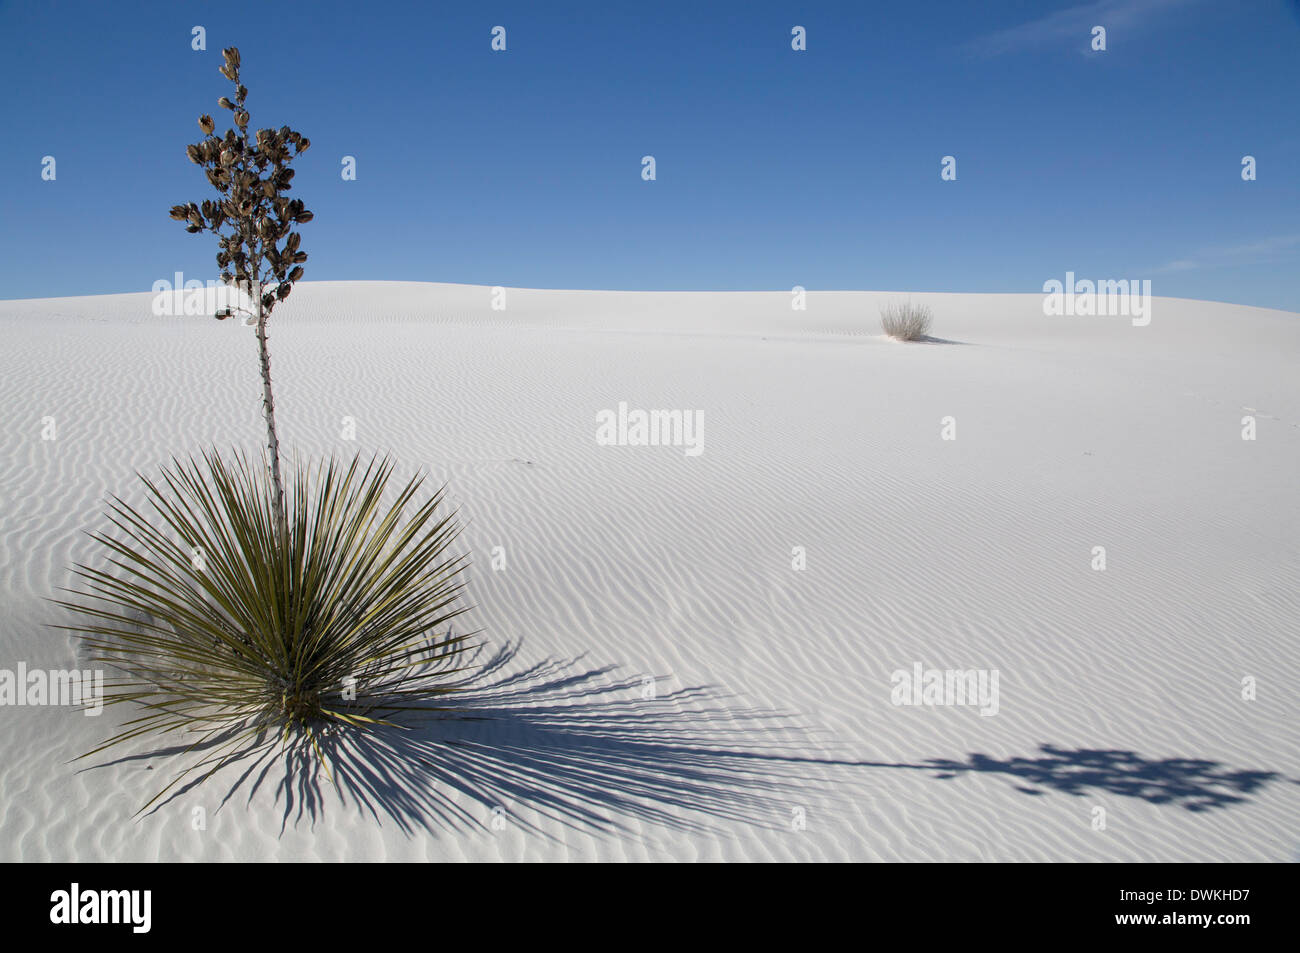 Yucca elata plant at the White Sands National Monument, the world's largest gypsum dunefield, New Mexico - Stock Image